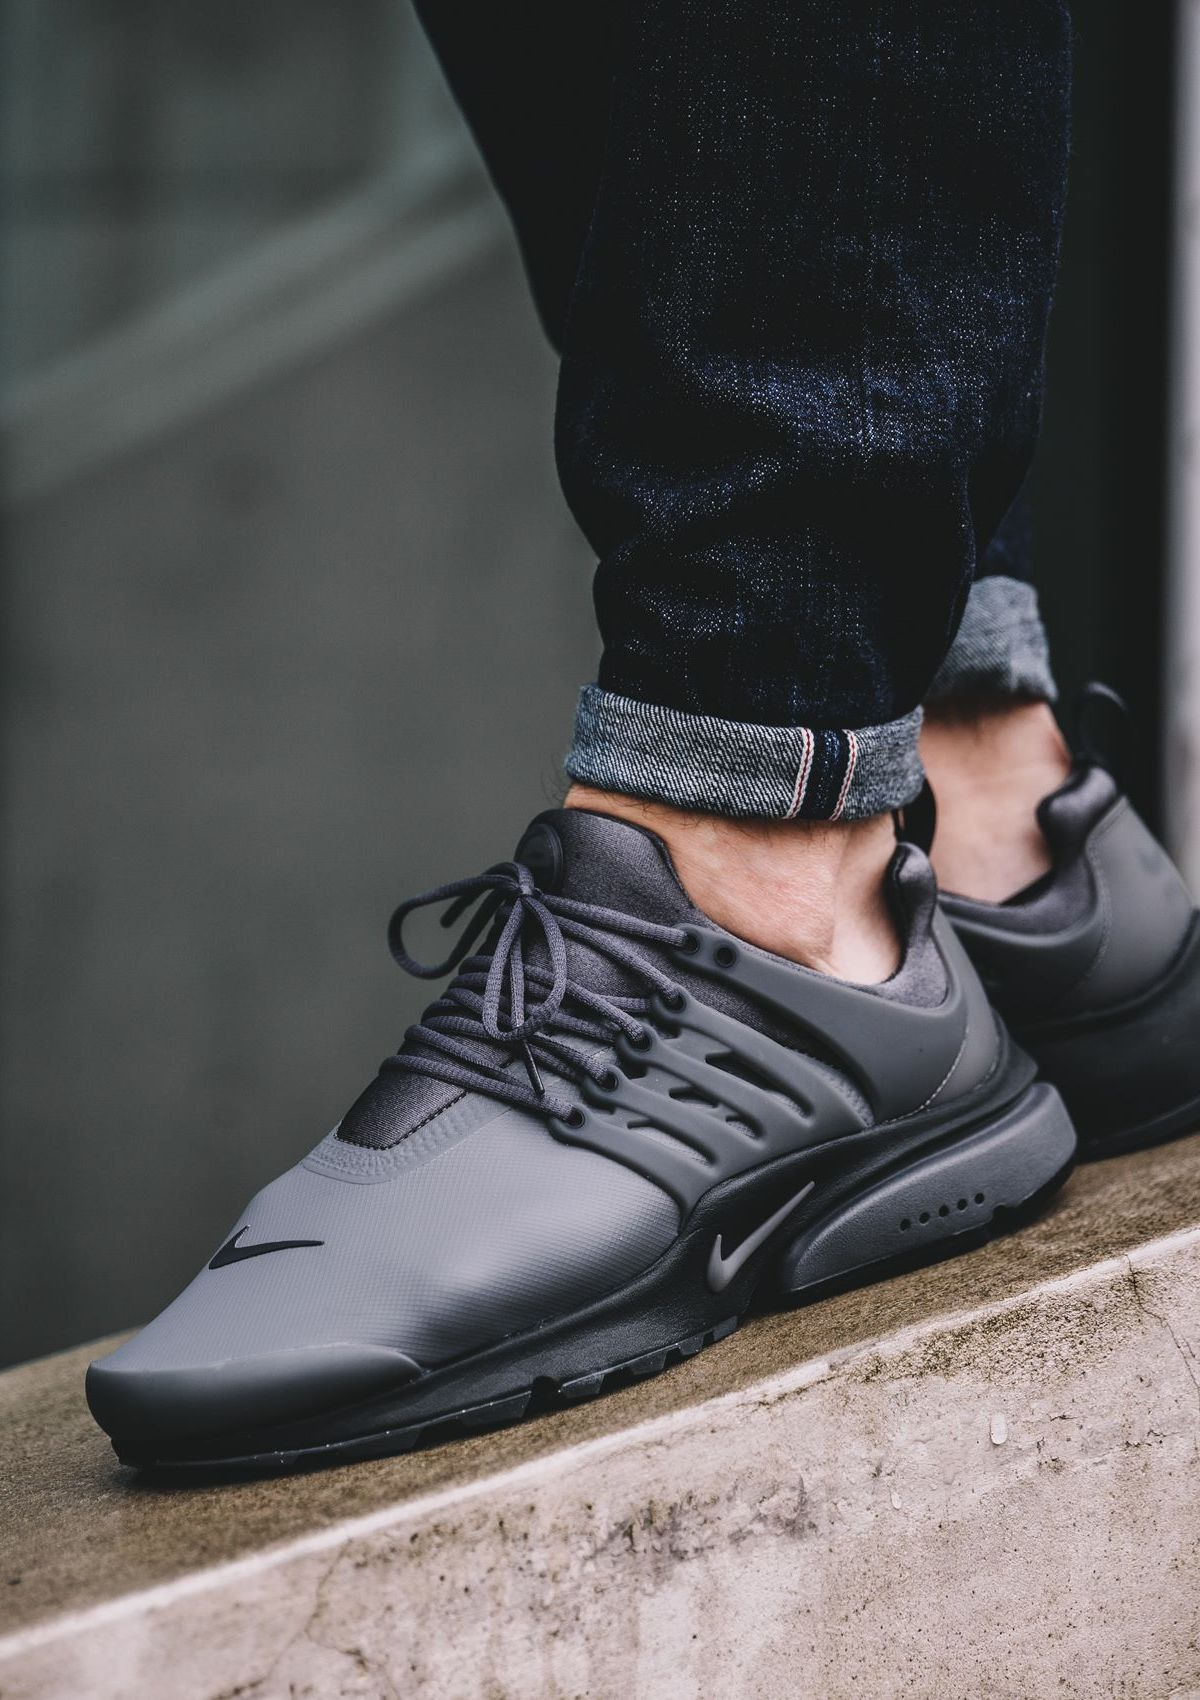 watch b4016 44d95 Nike Air Presto Low Utility grey  sneakernews  Sneakers  StreetStyle  Kicks